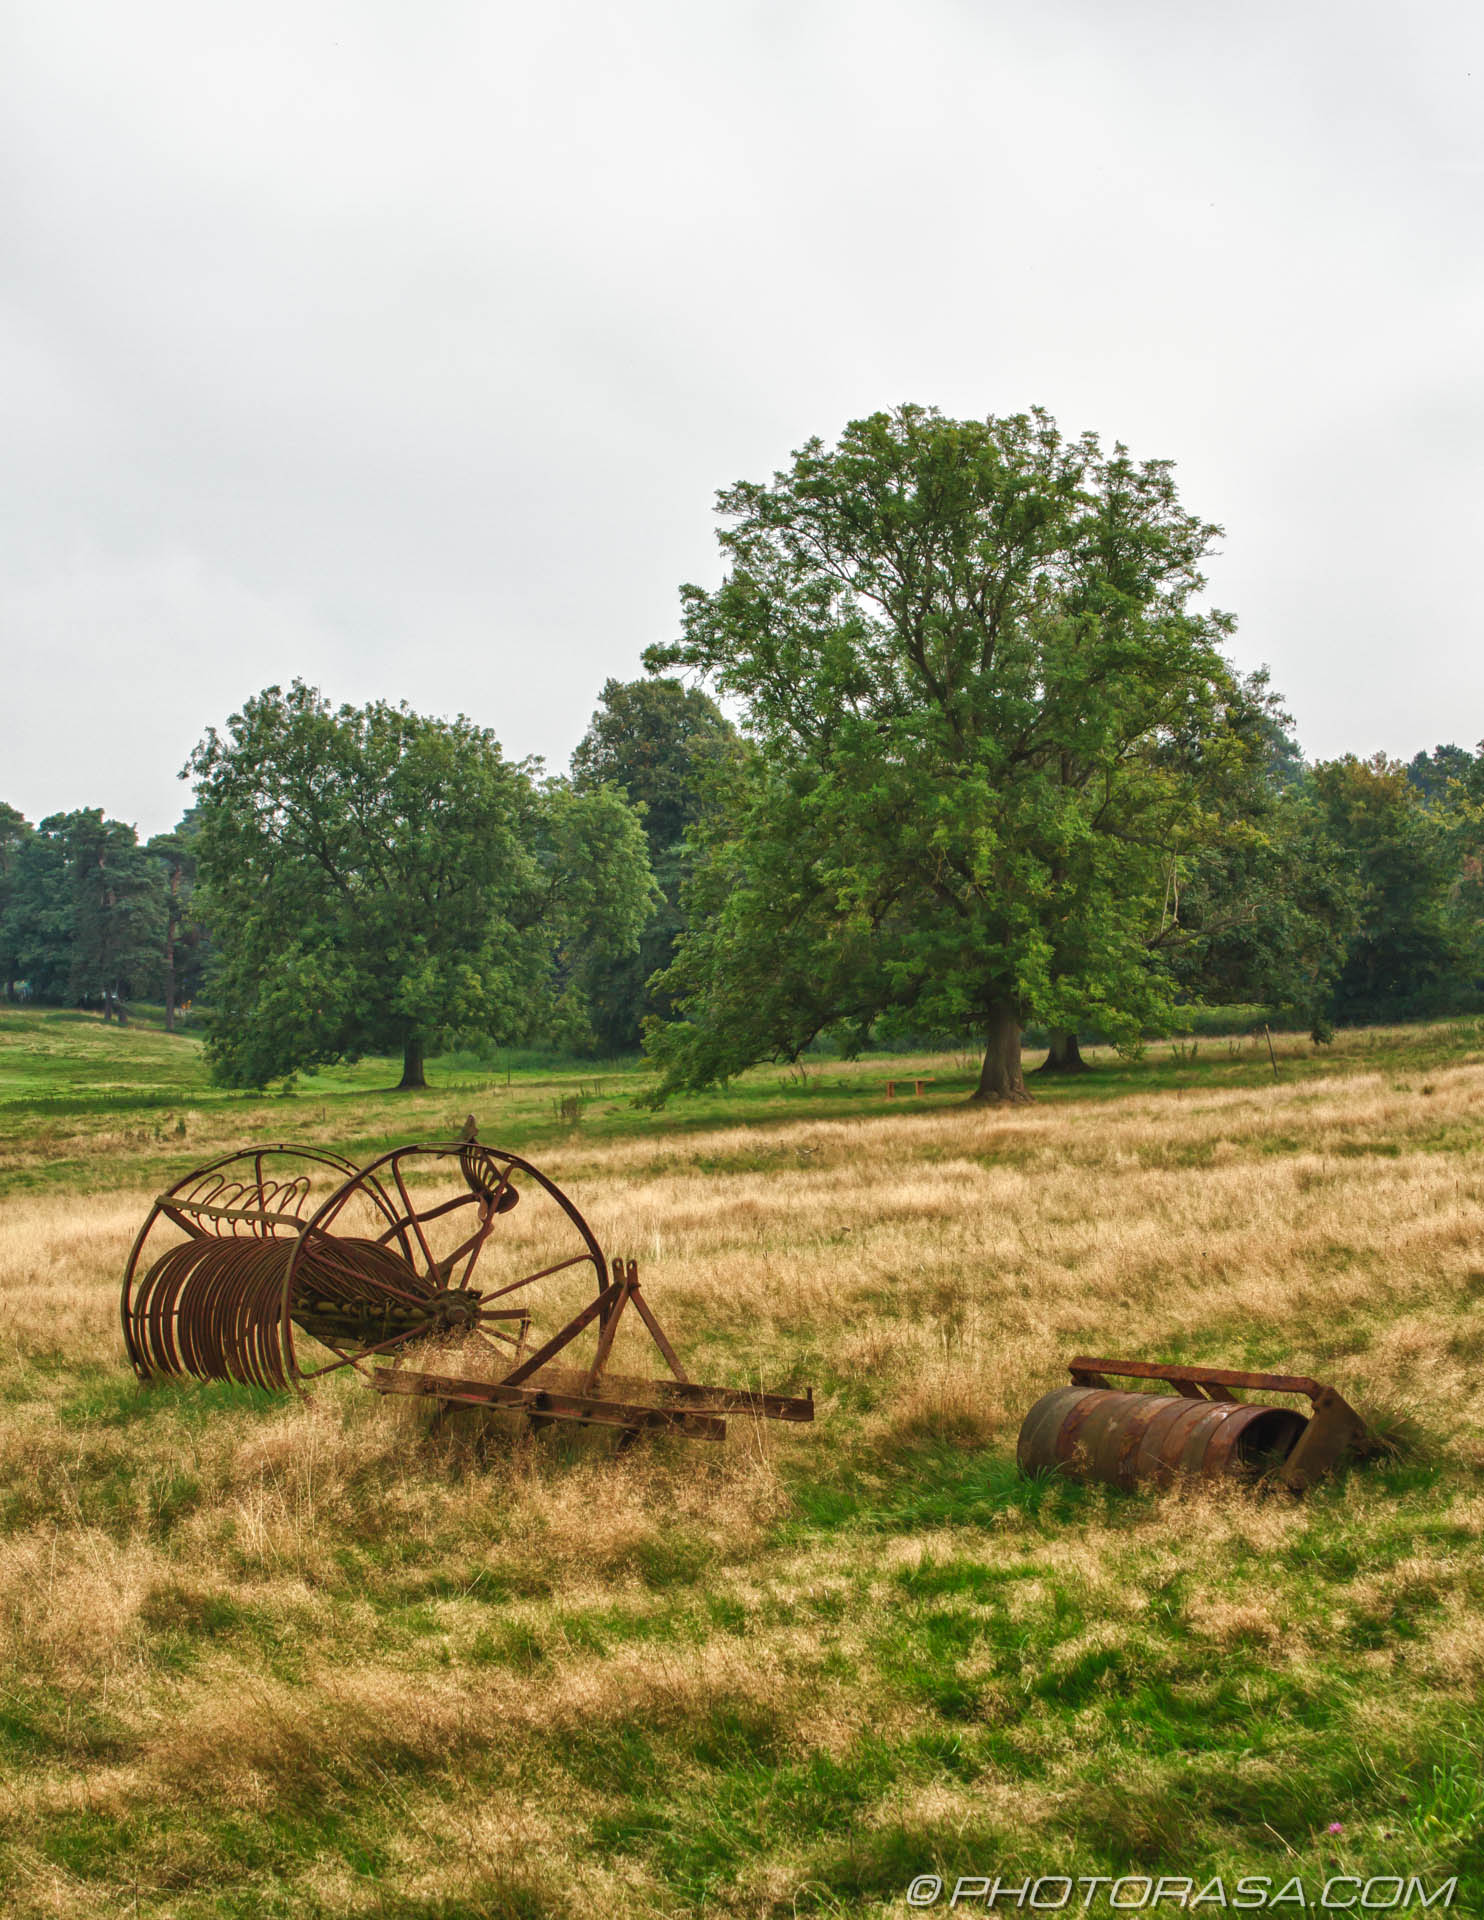 http://photorasa.com/farming/rusting-farm-machinery-in-field/